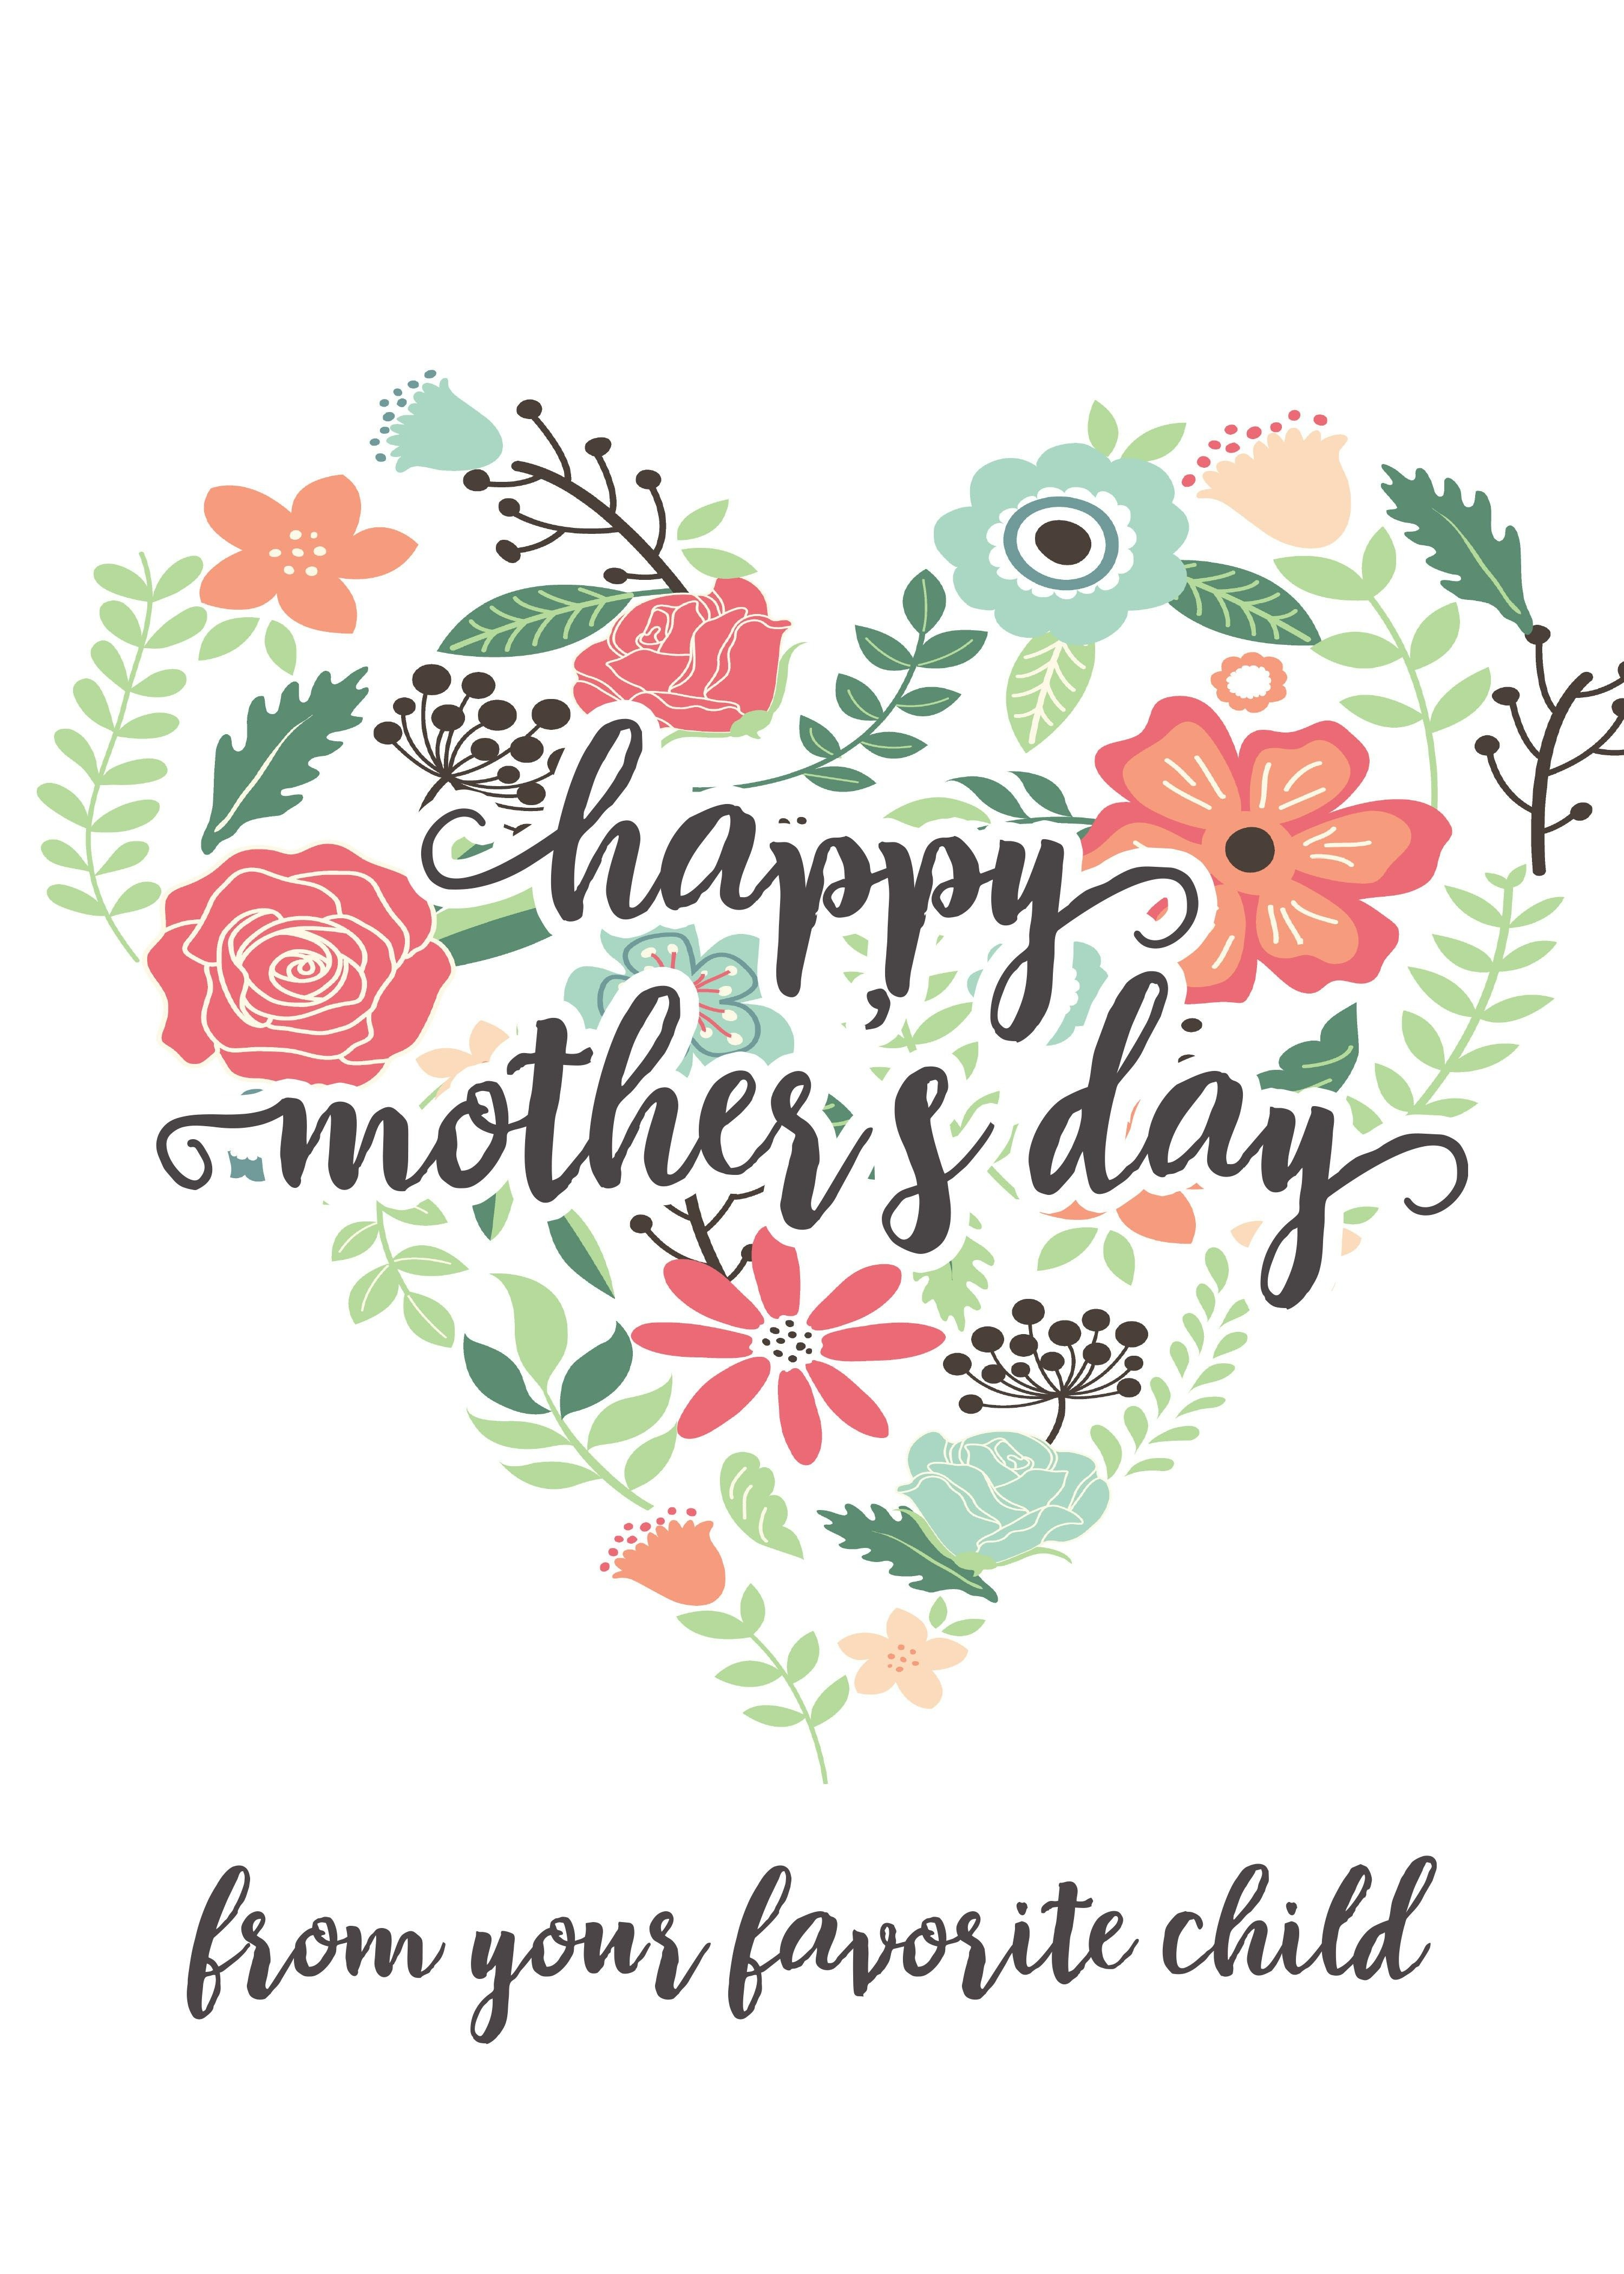 Happy Mothers Day Messages Free Printable Mothers Day Cards - Free Printable Mothers Day Cards No Download